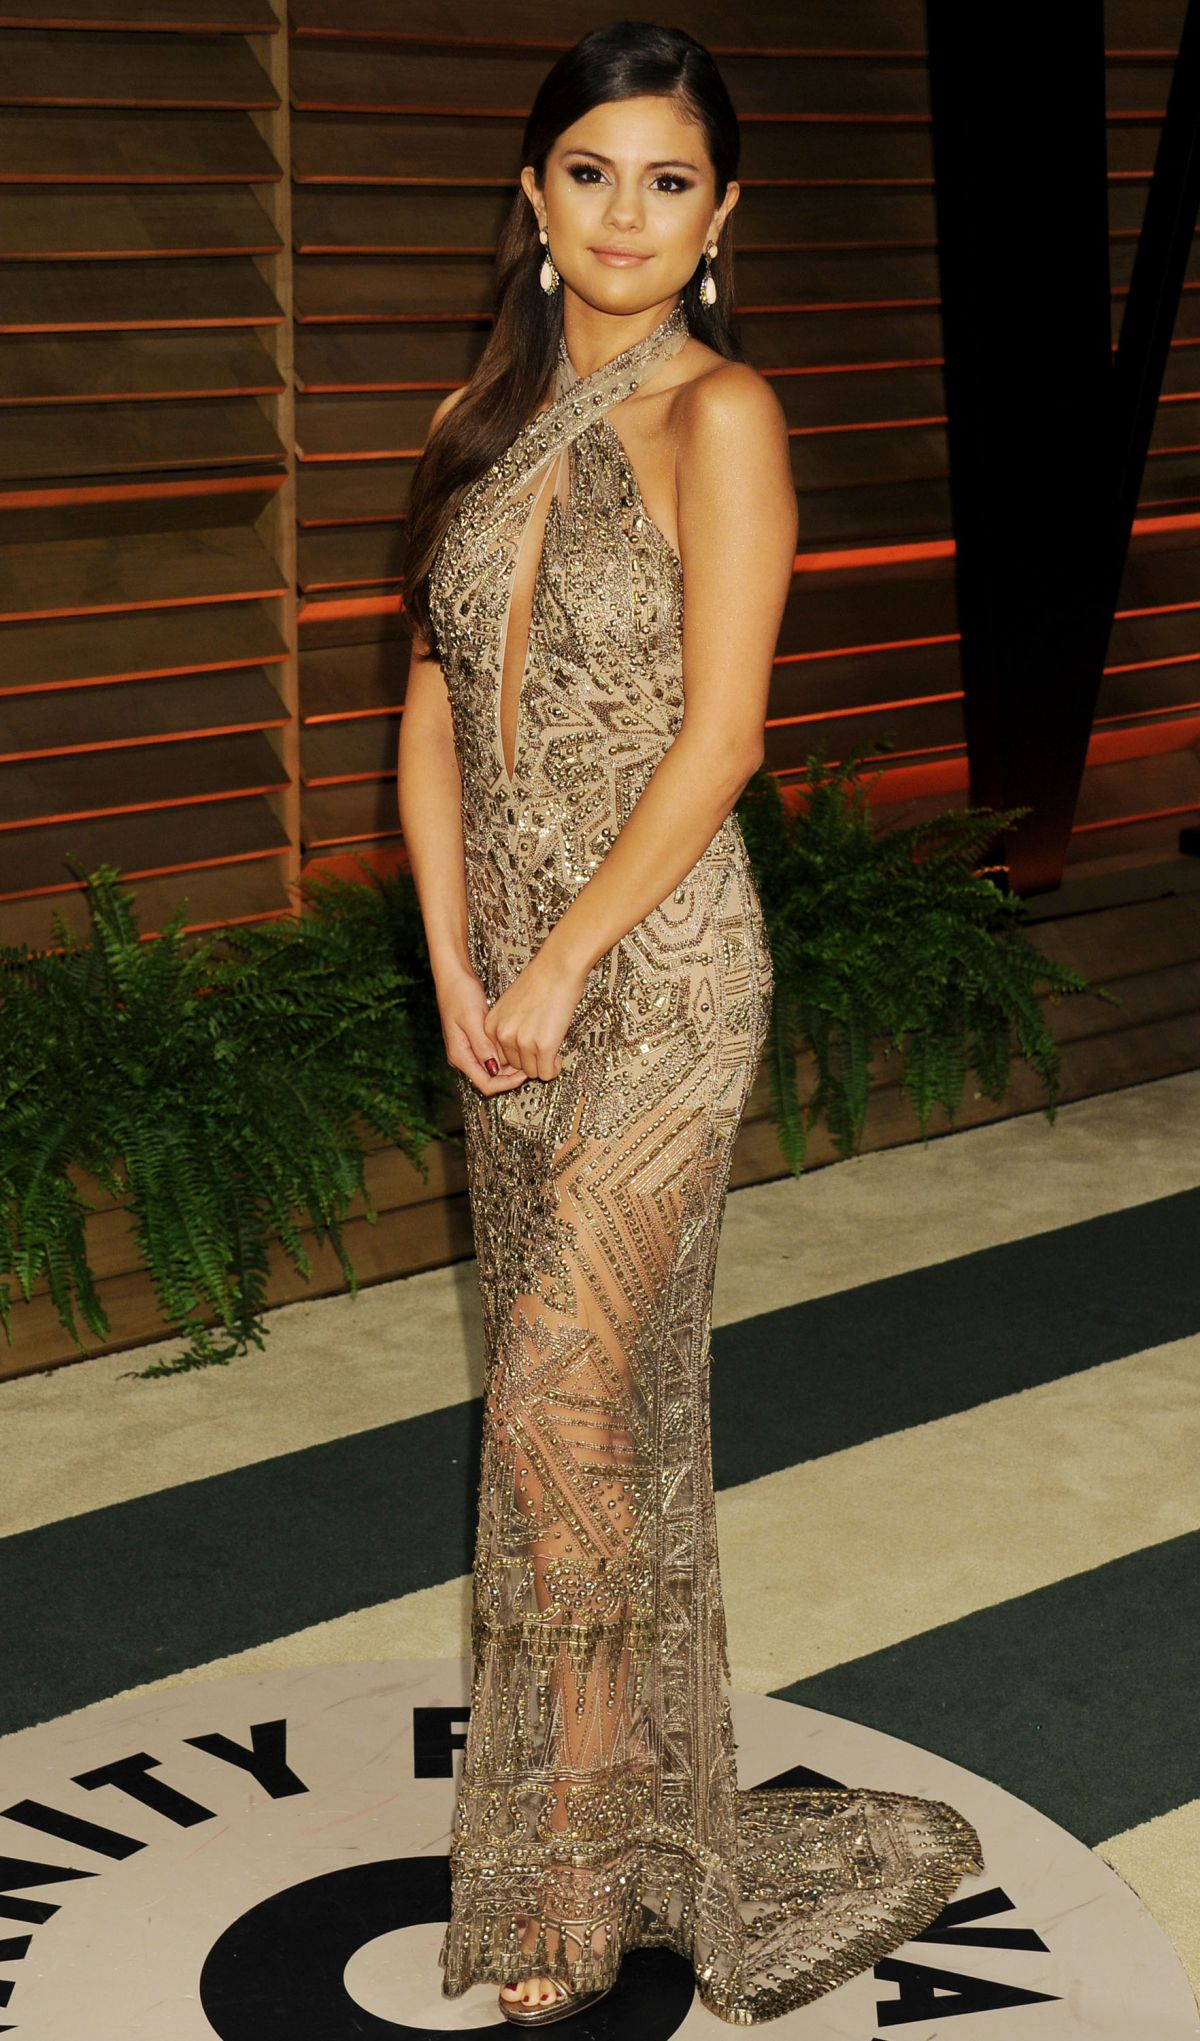 SELENA GOMEZ at Vanity Fair Oscar Party in Hollywood